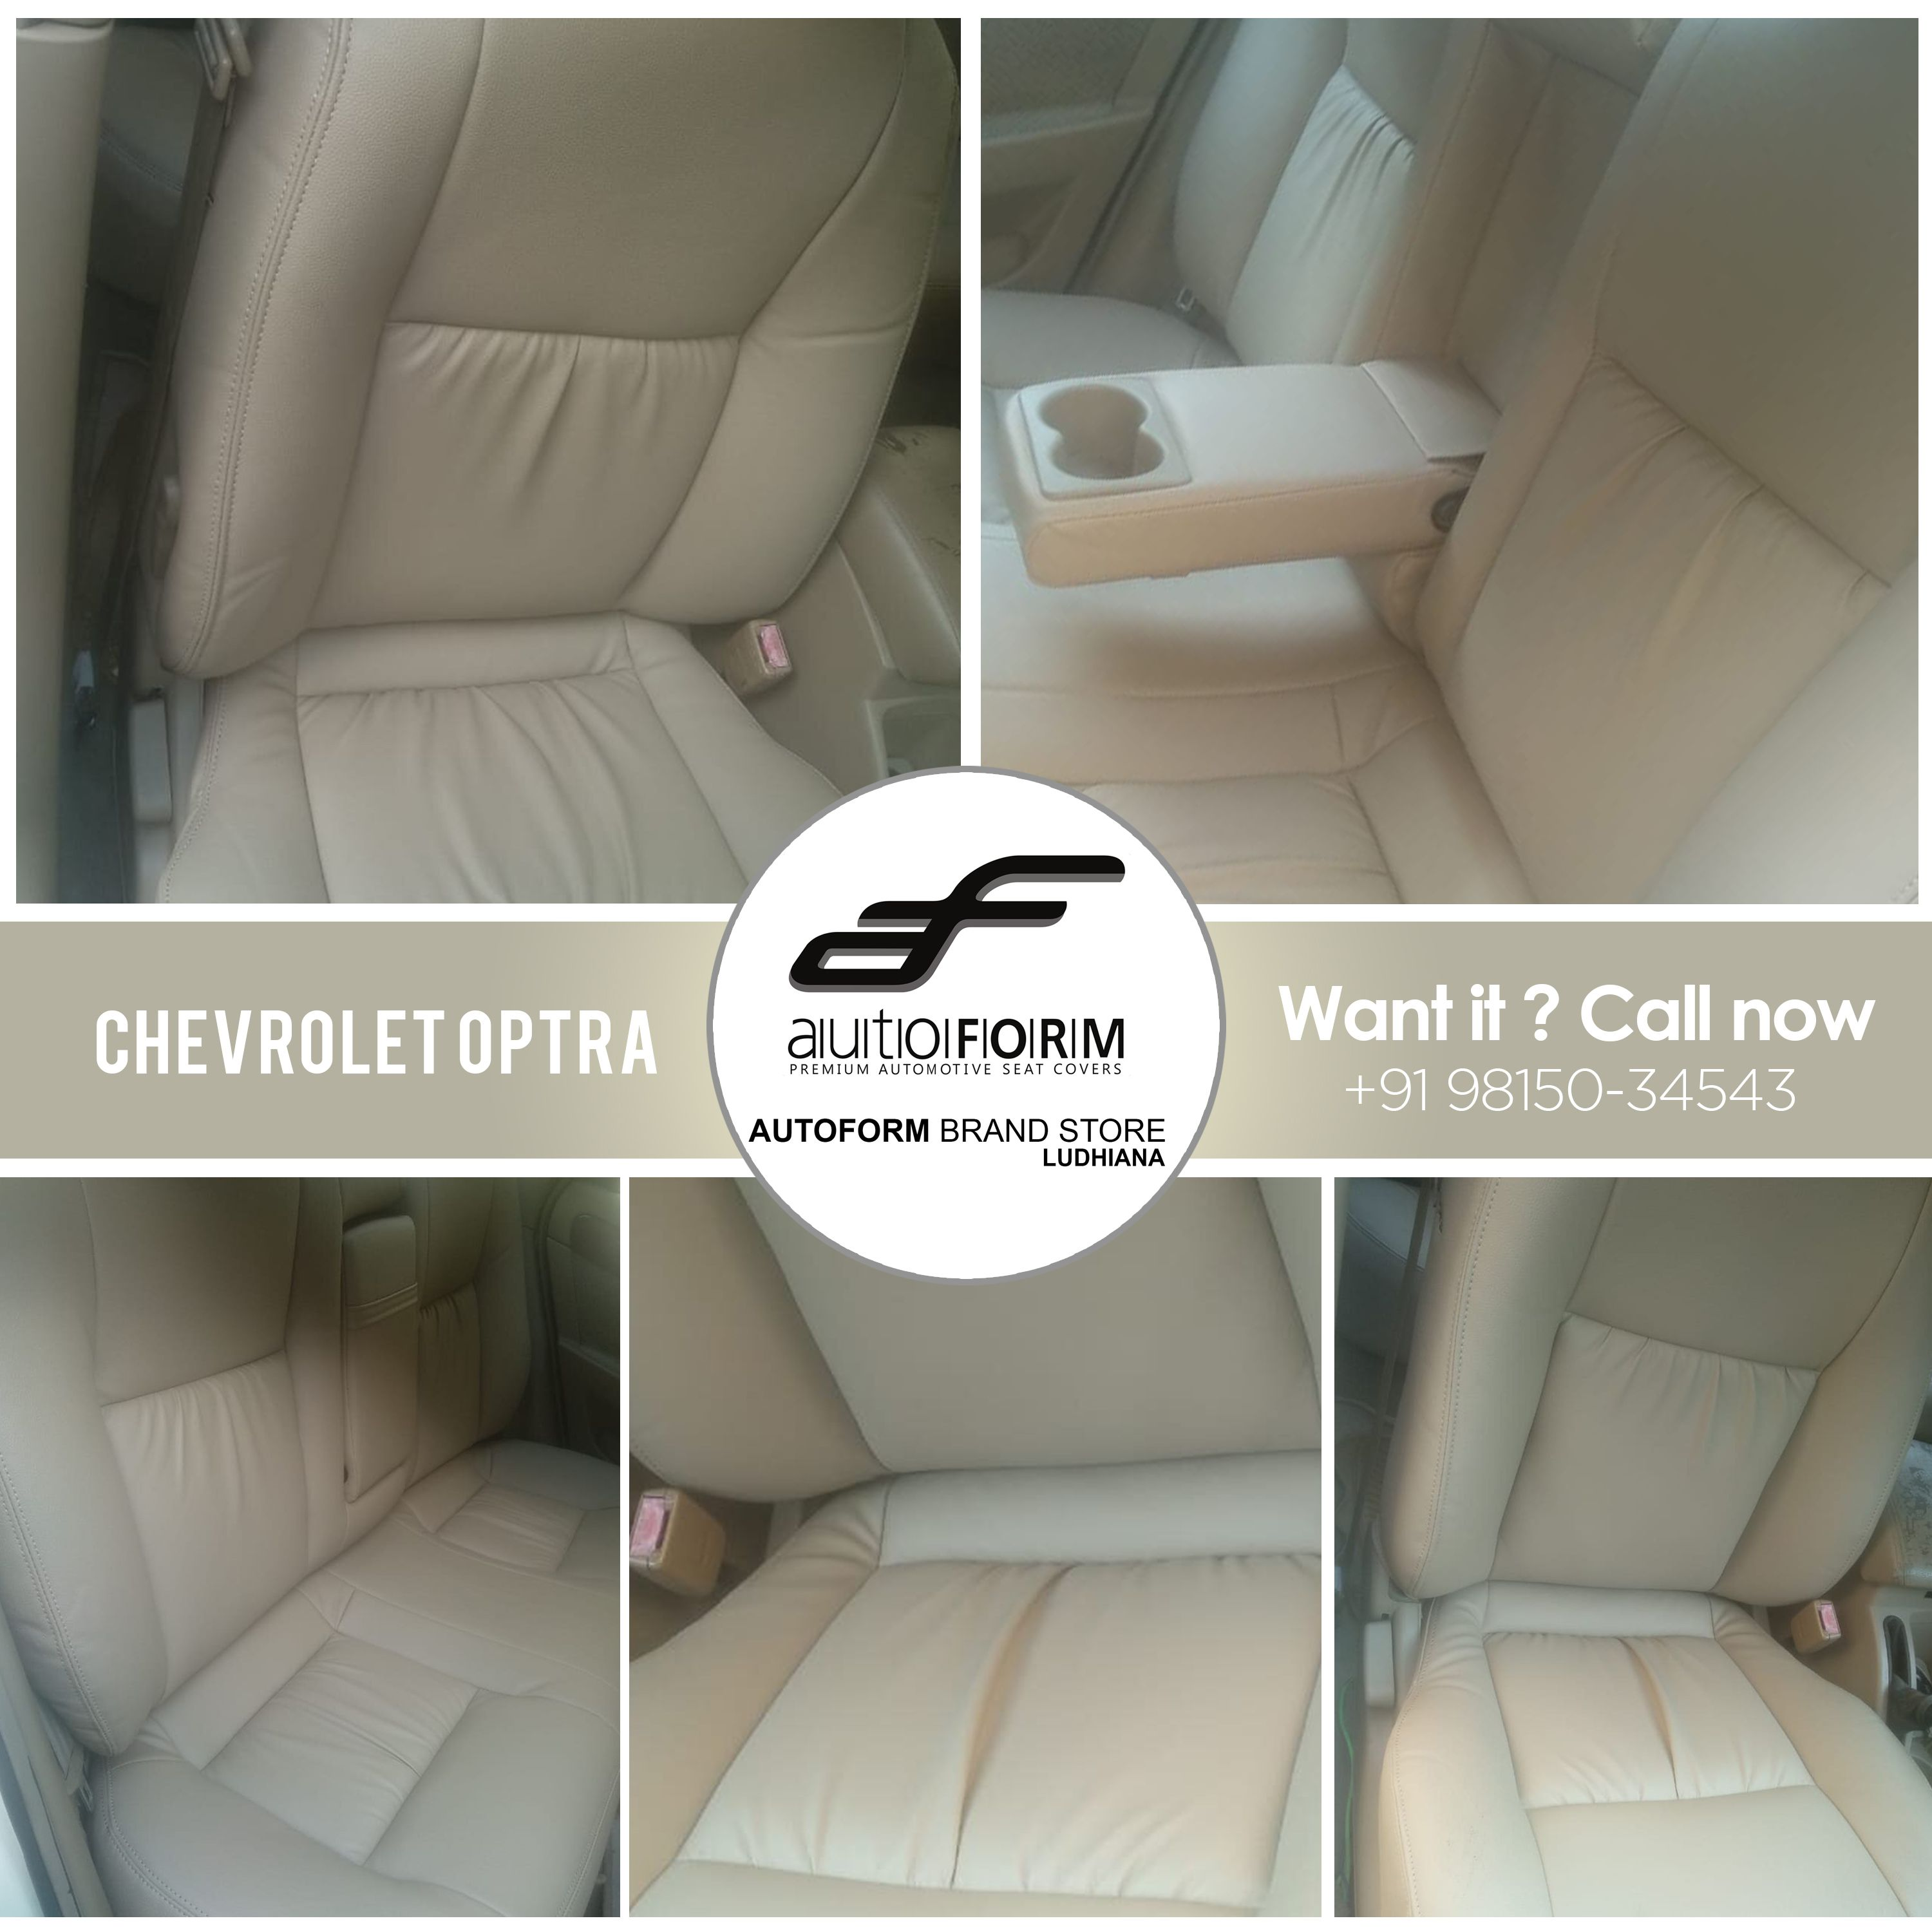 Chevrolet Optra In The Off White Colours From Riviera Series Of Autoformindia Looks Perfect And Nicely Settled Inside Cars C Seat Covers Car Seats Ludhiana